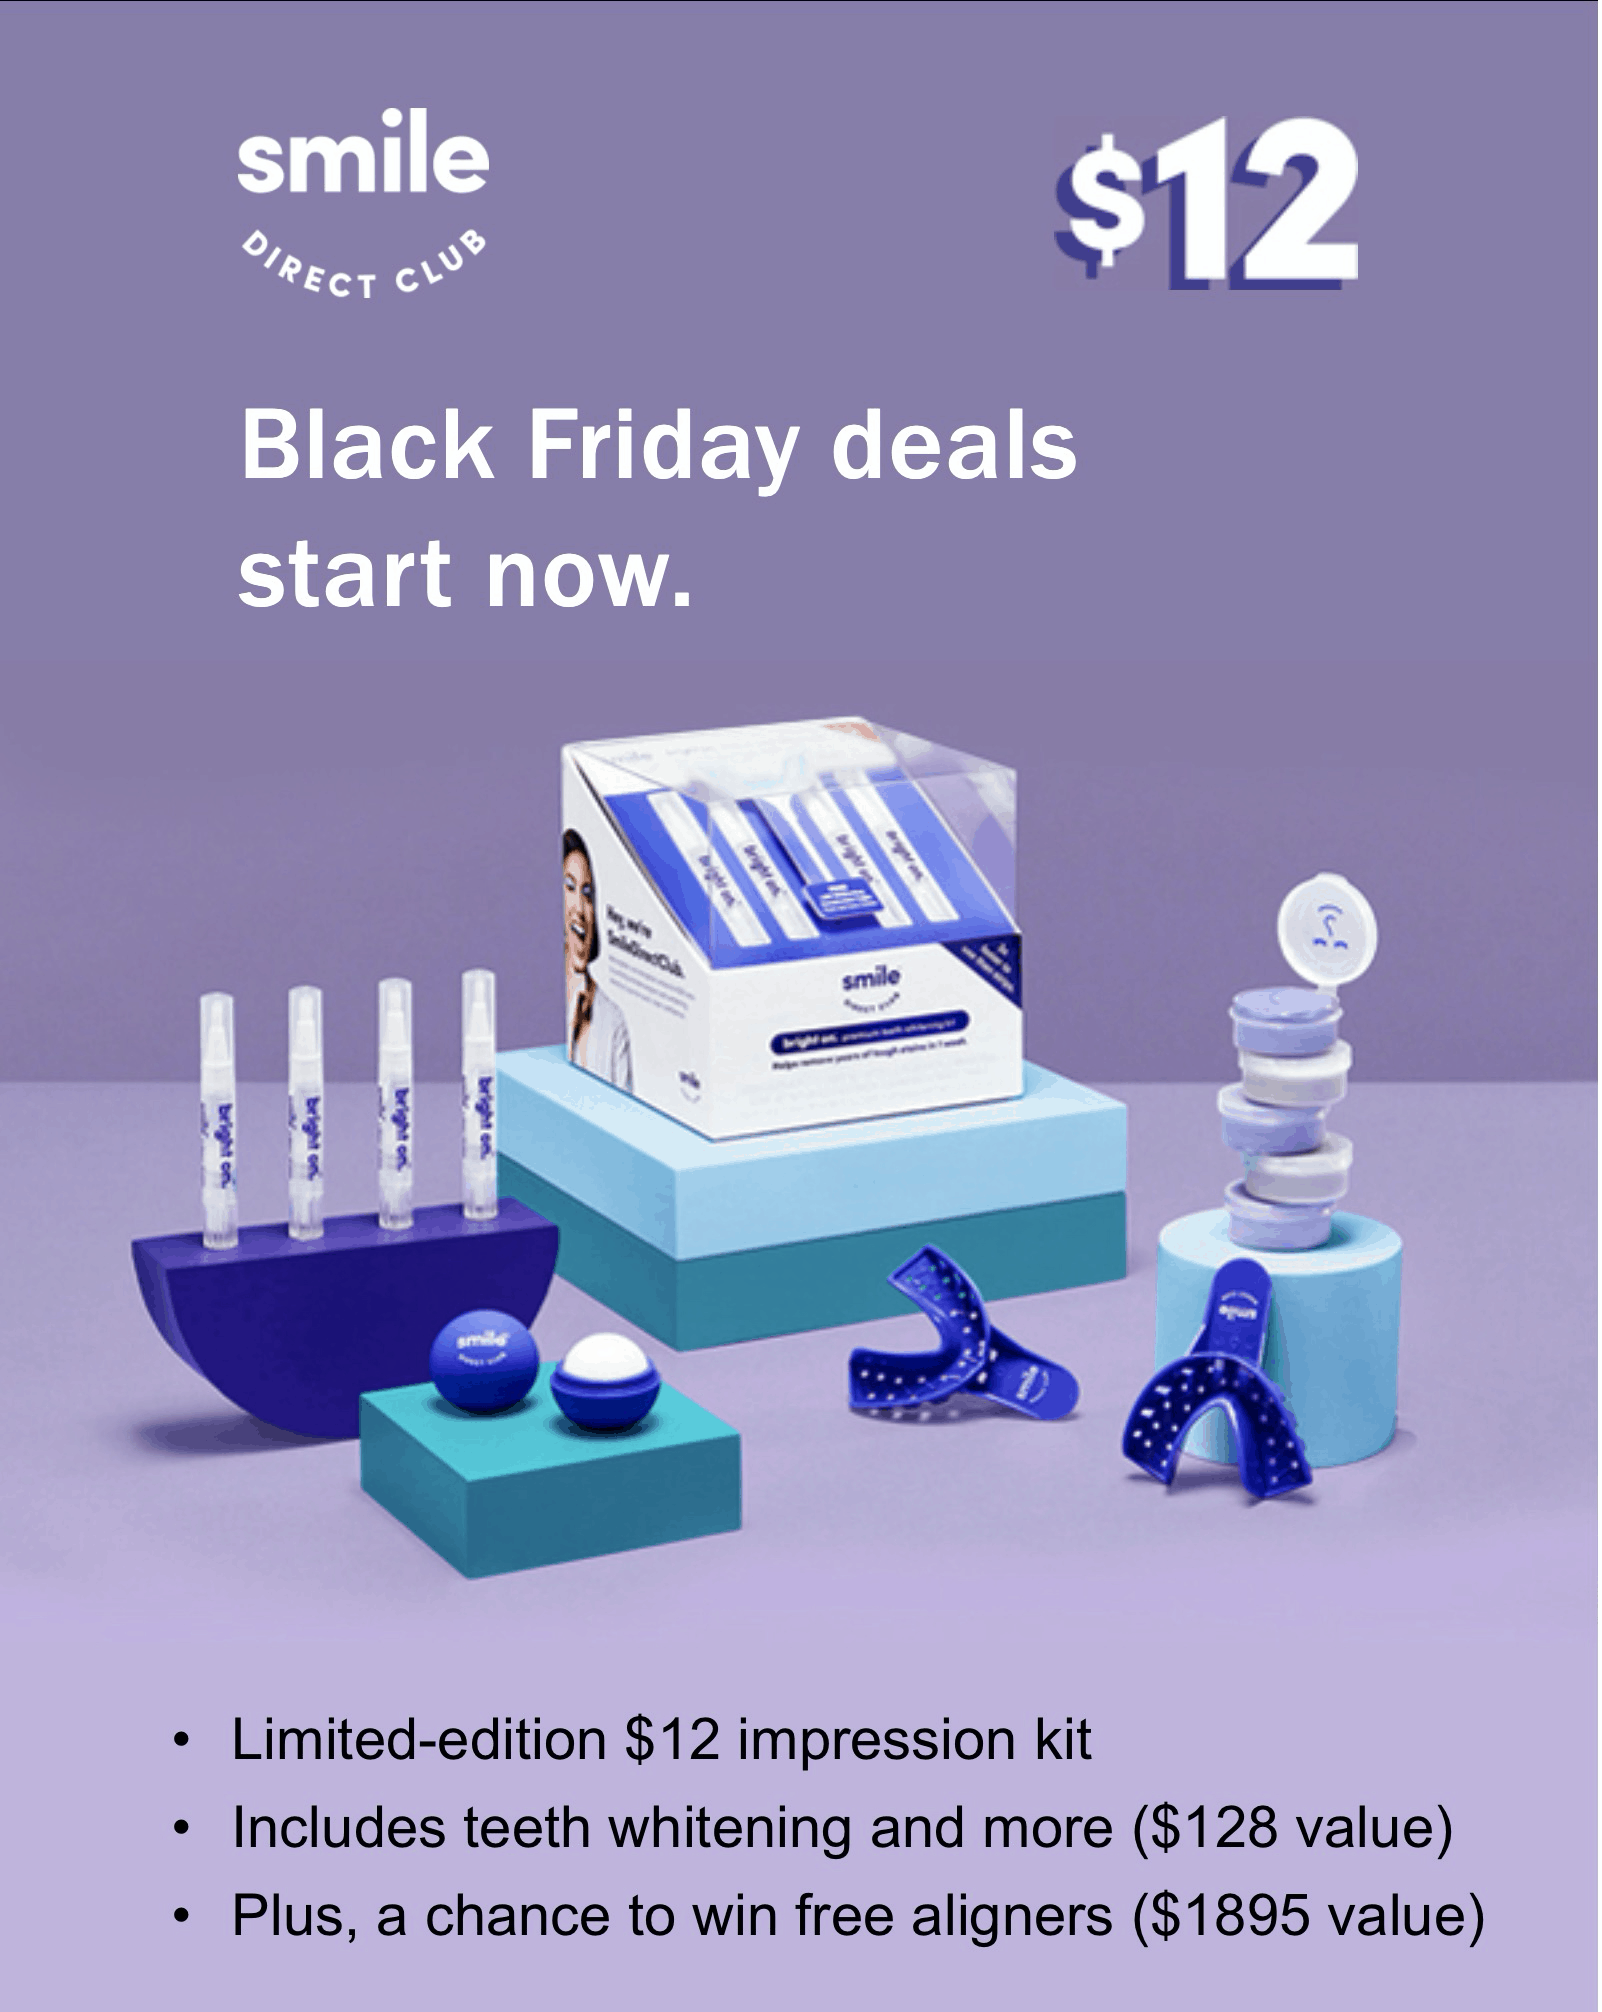 Smile Direct Club Black Friday Coupon: Get your kit for just $12!